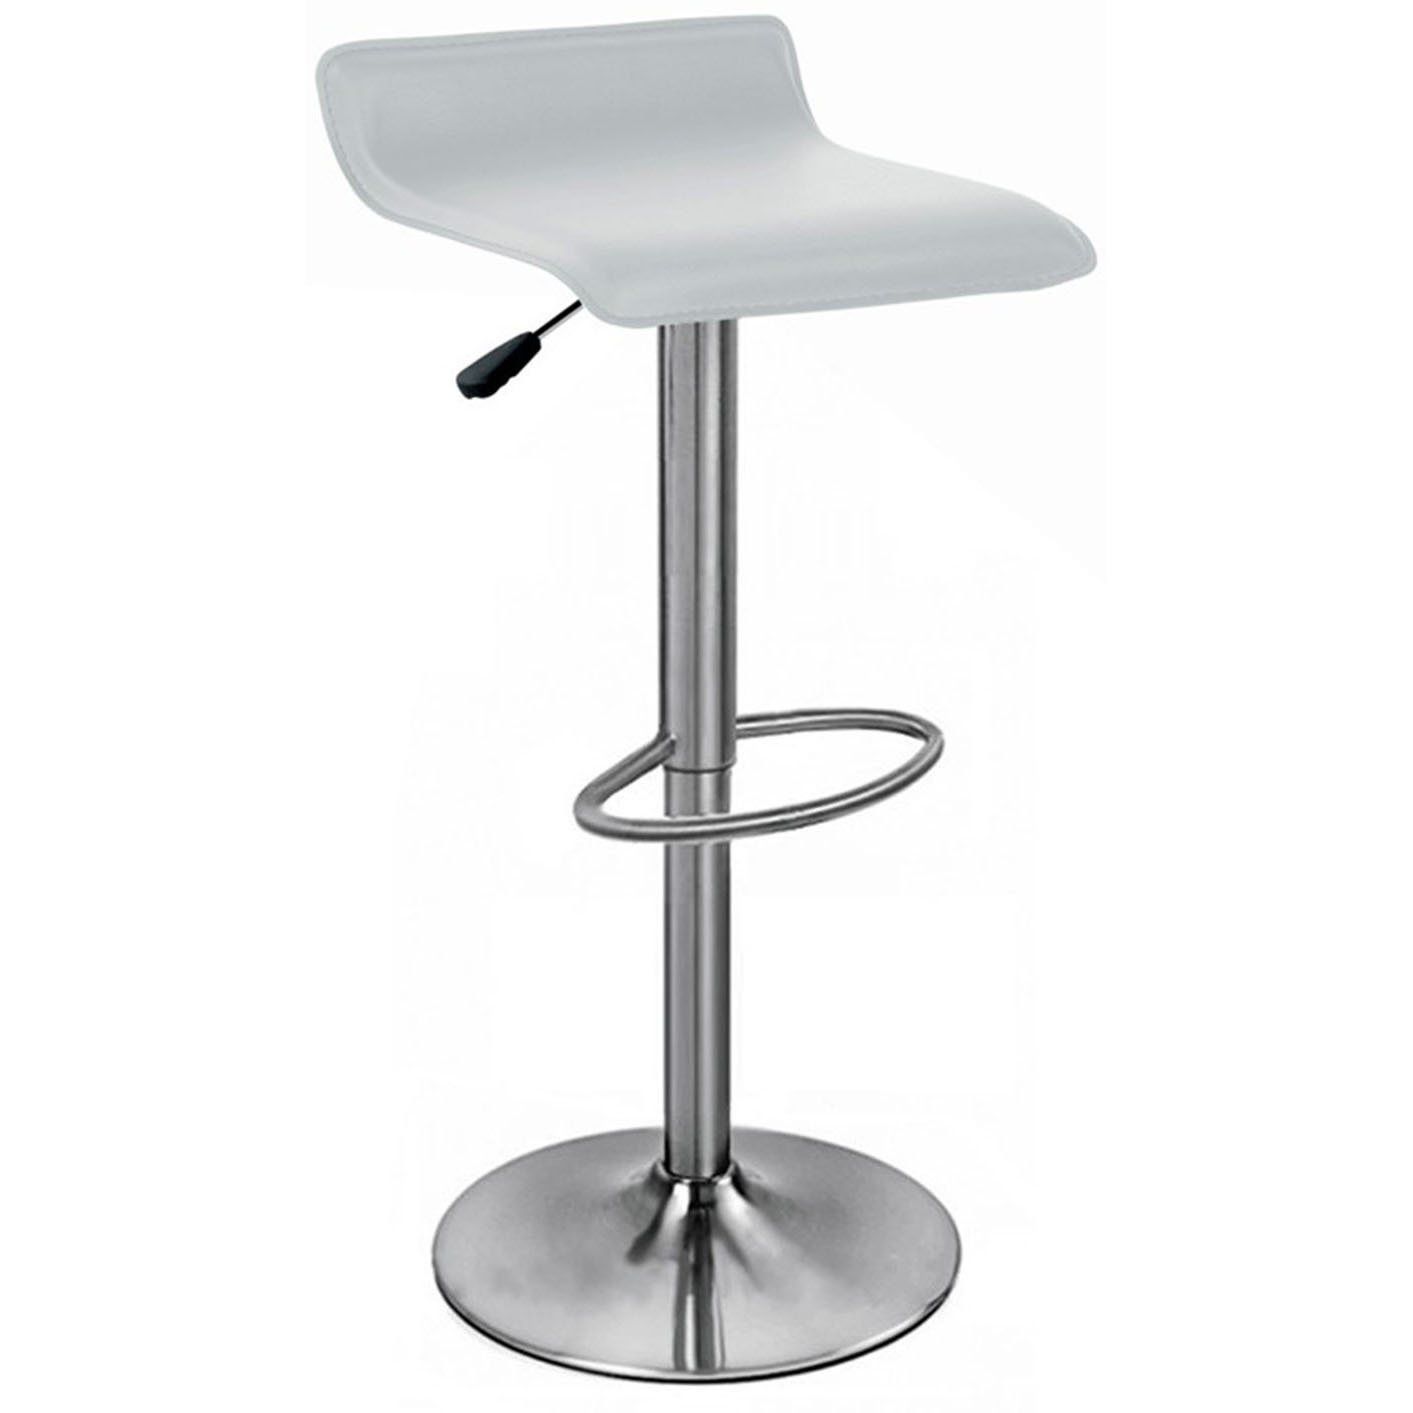 Baceno Brushed Bar Stool - White